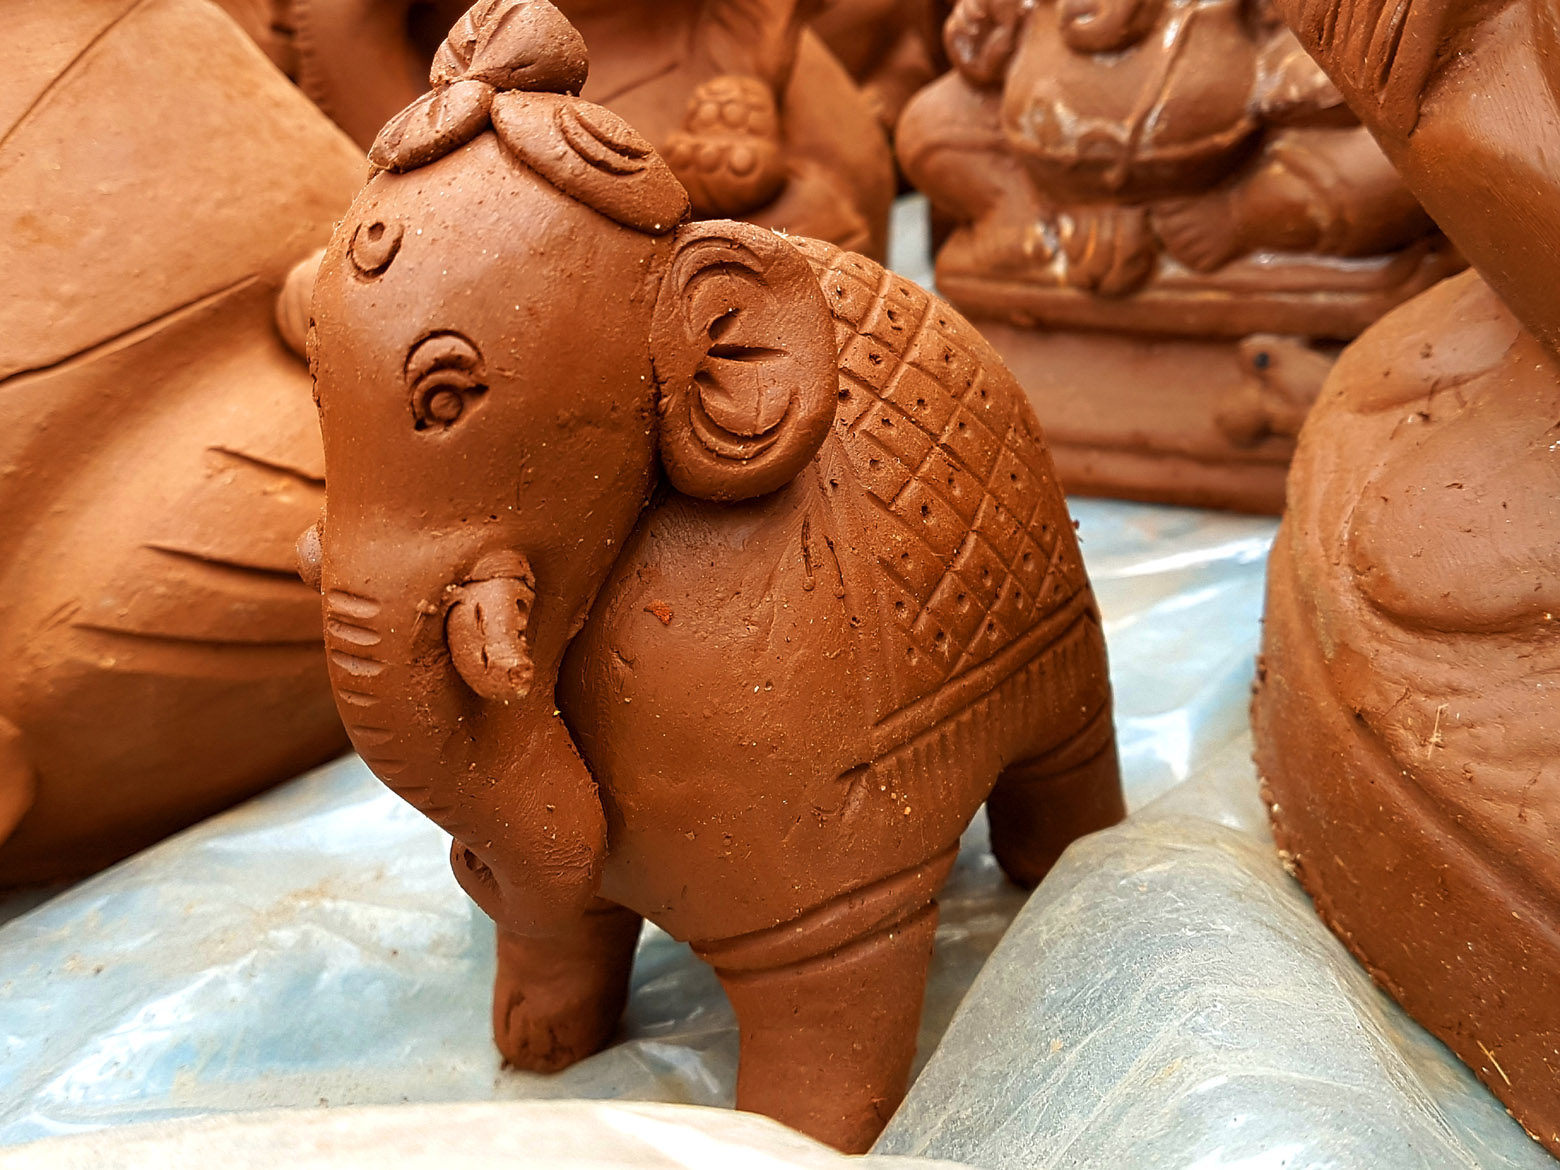 Clay Toy Ganesh